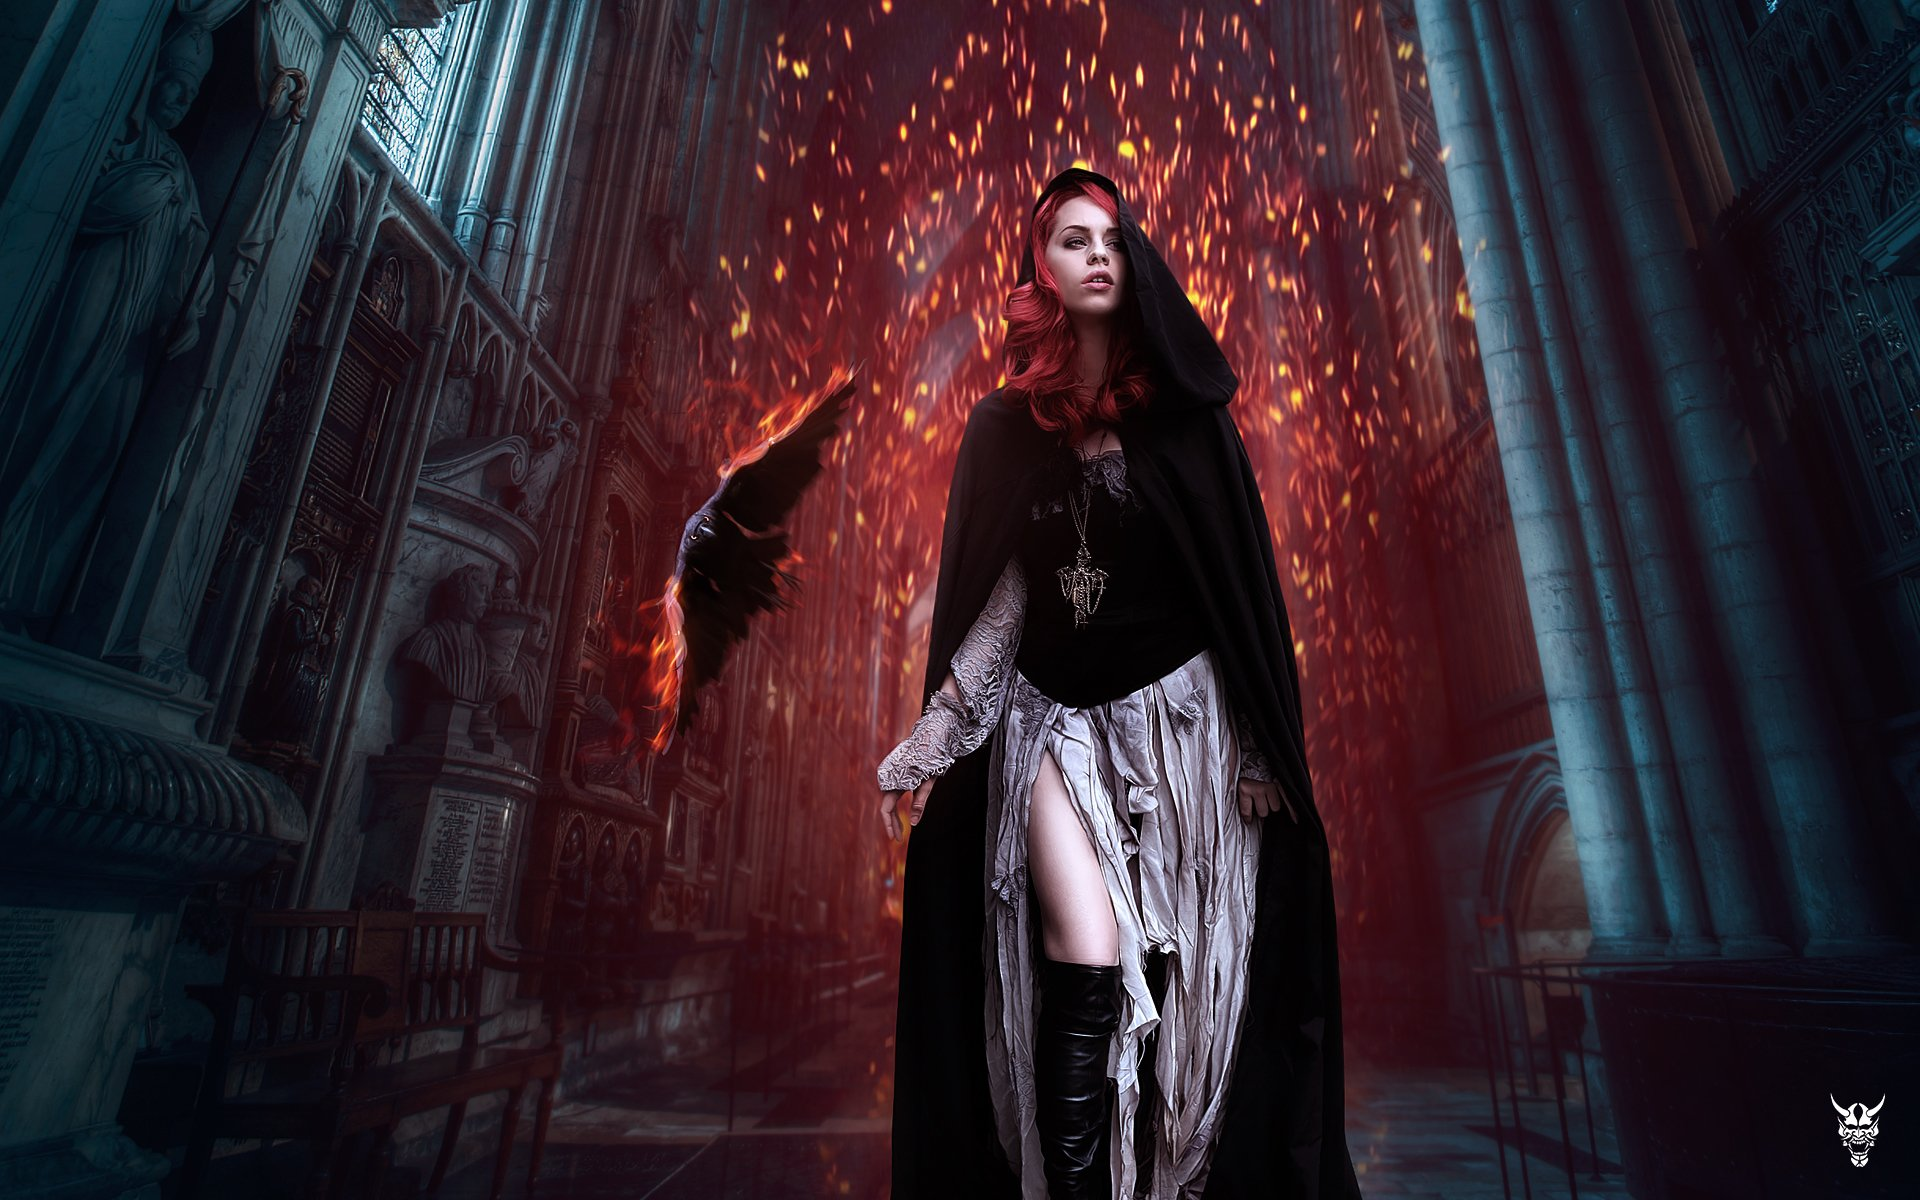 Goth Girl Wallpaper 1440x2960 Quot Walk With Fire Quot Hd Wallpaper Background Image